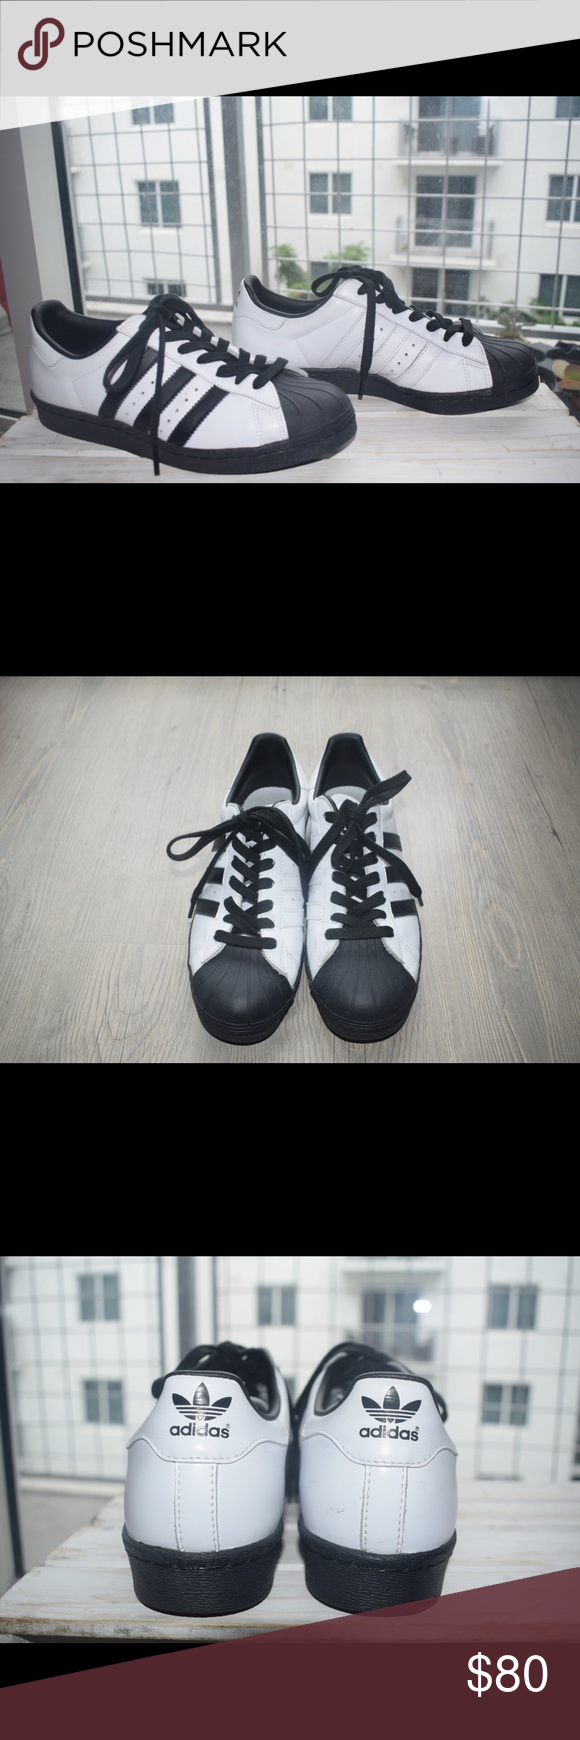 Custom adidas superstar zapatilla negro Toe, Adidas Superstar y